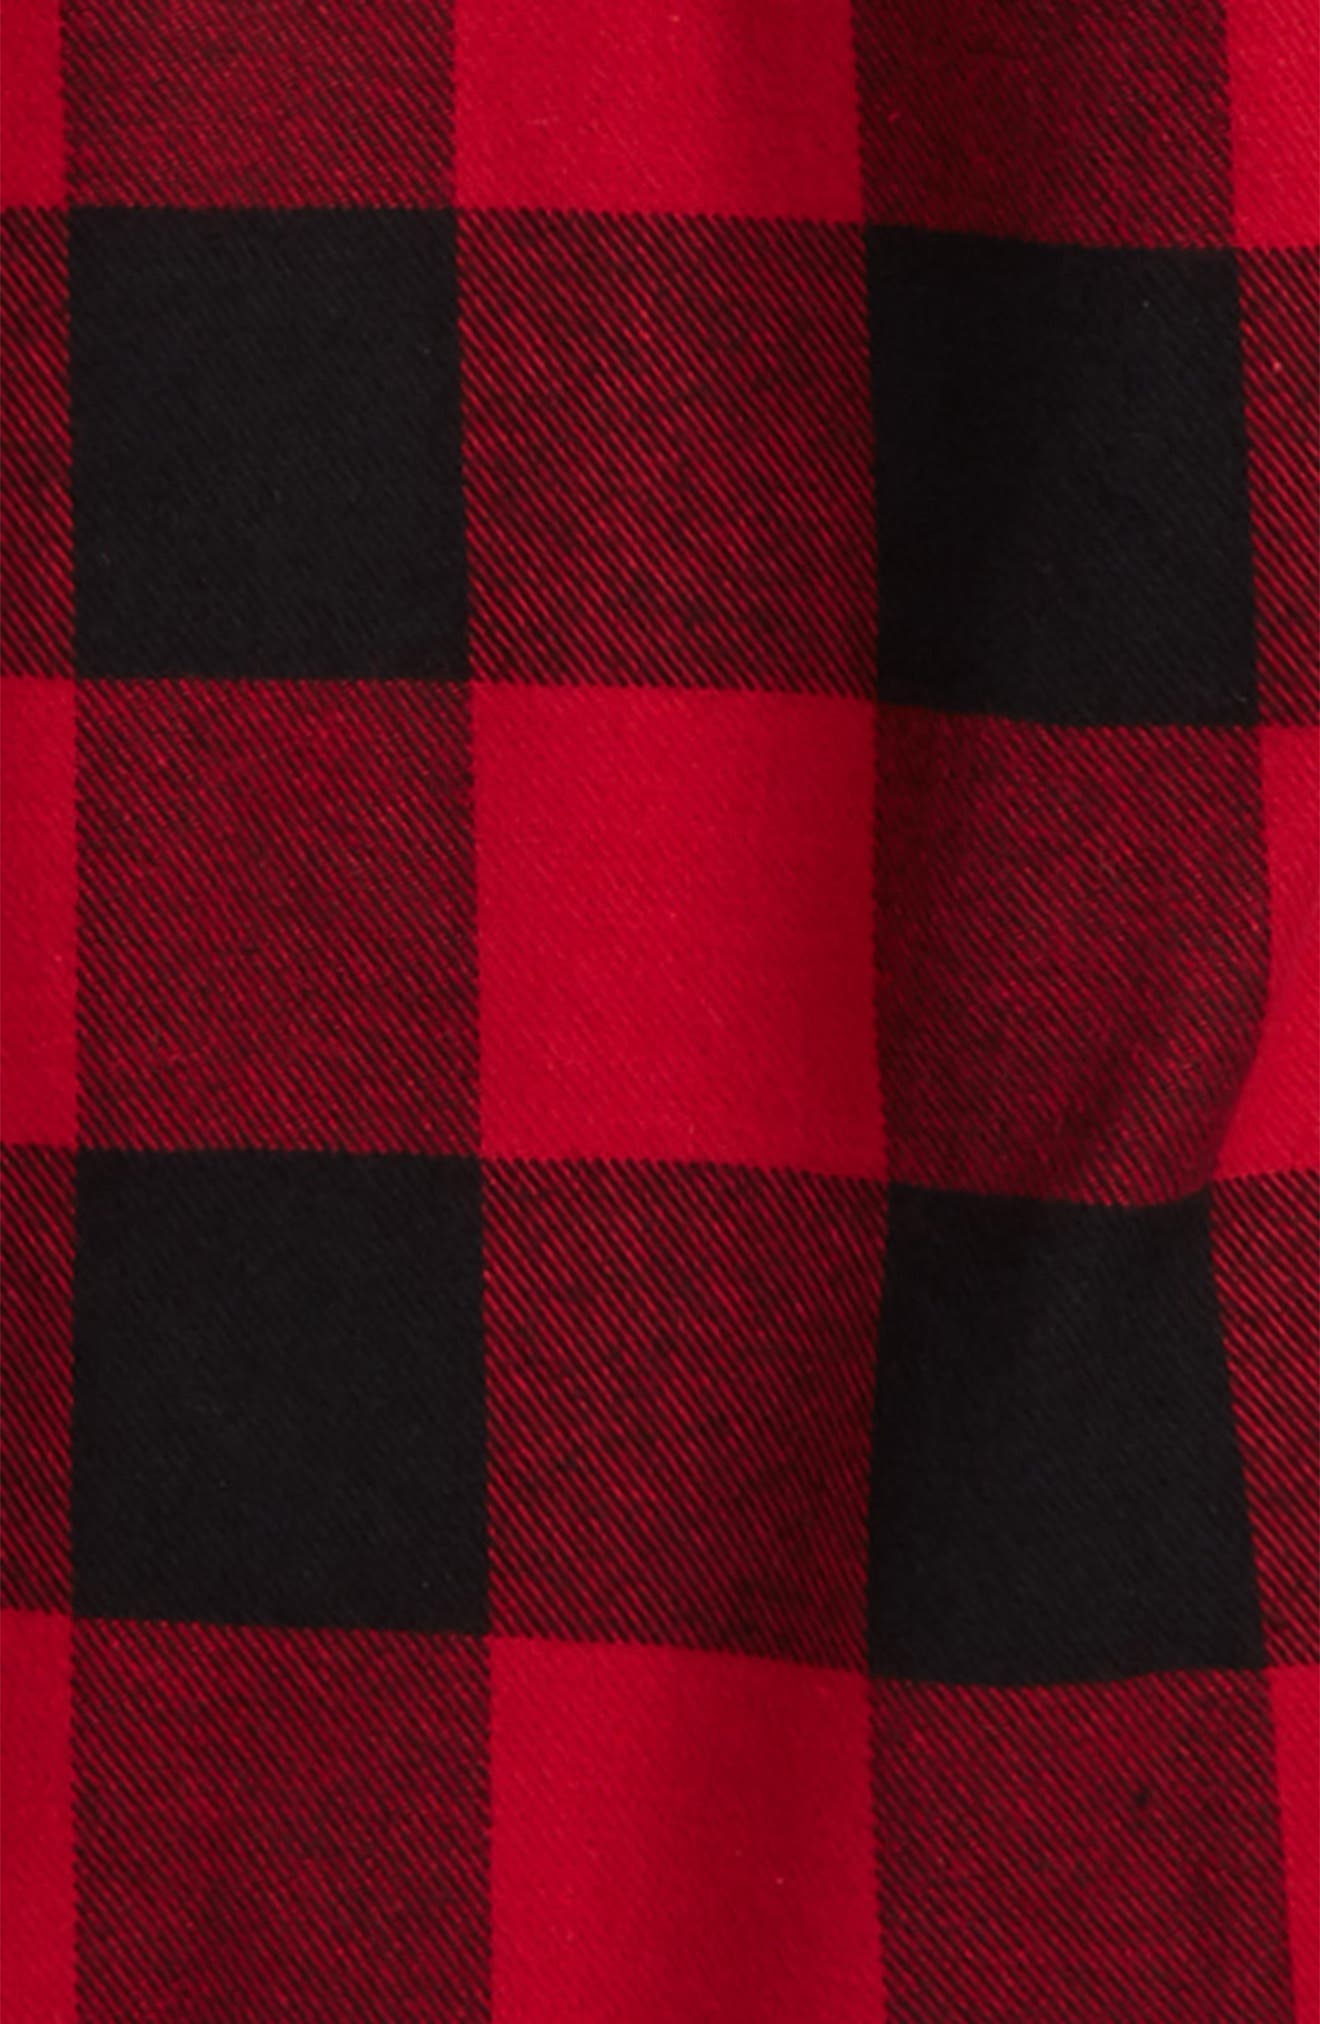 Buffalo Check Woven Shirt,                             Alternate thumbnail 2, color,                             Red Plaid